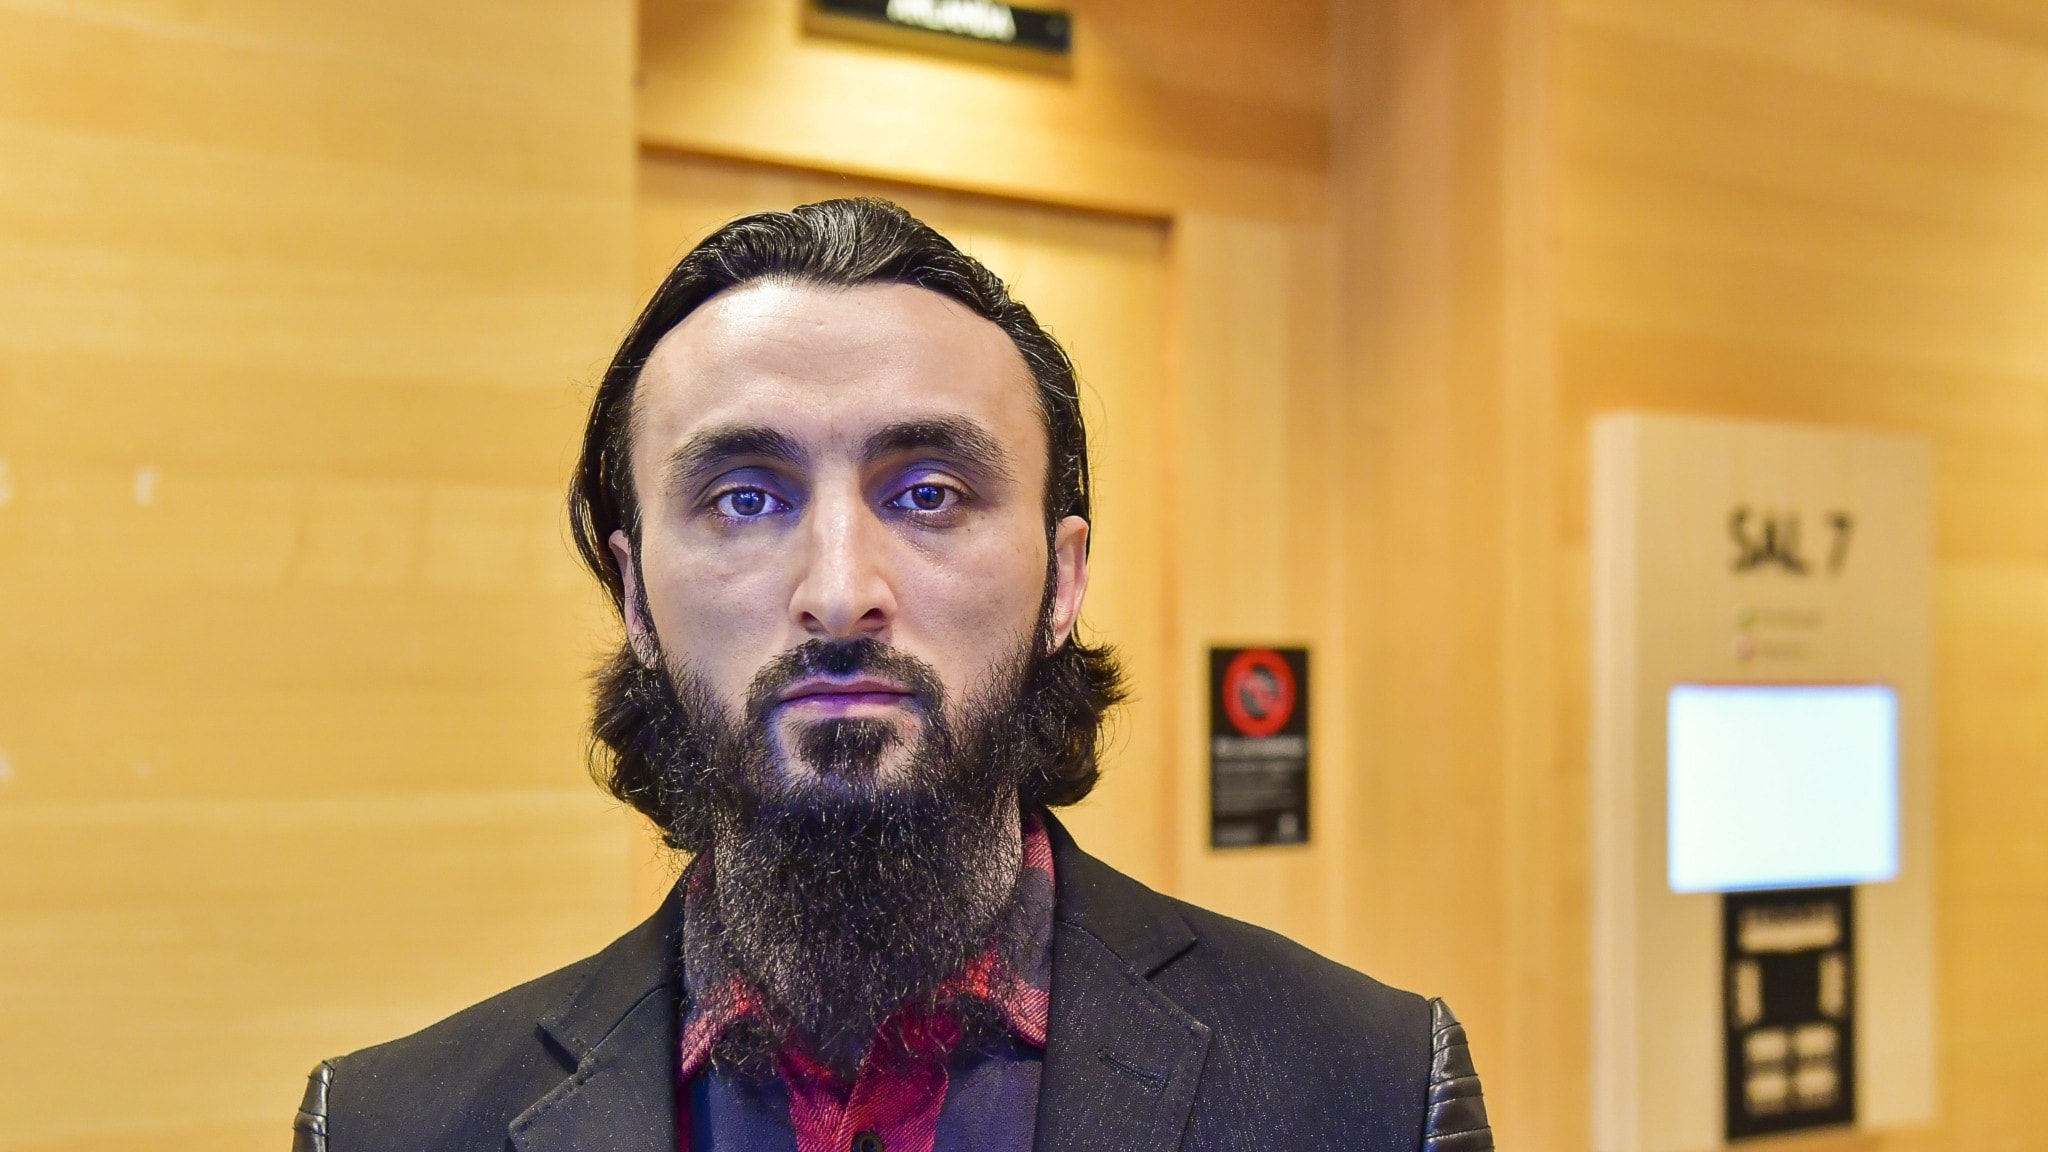 Bearded man in a suit outside a court room.